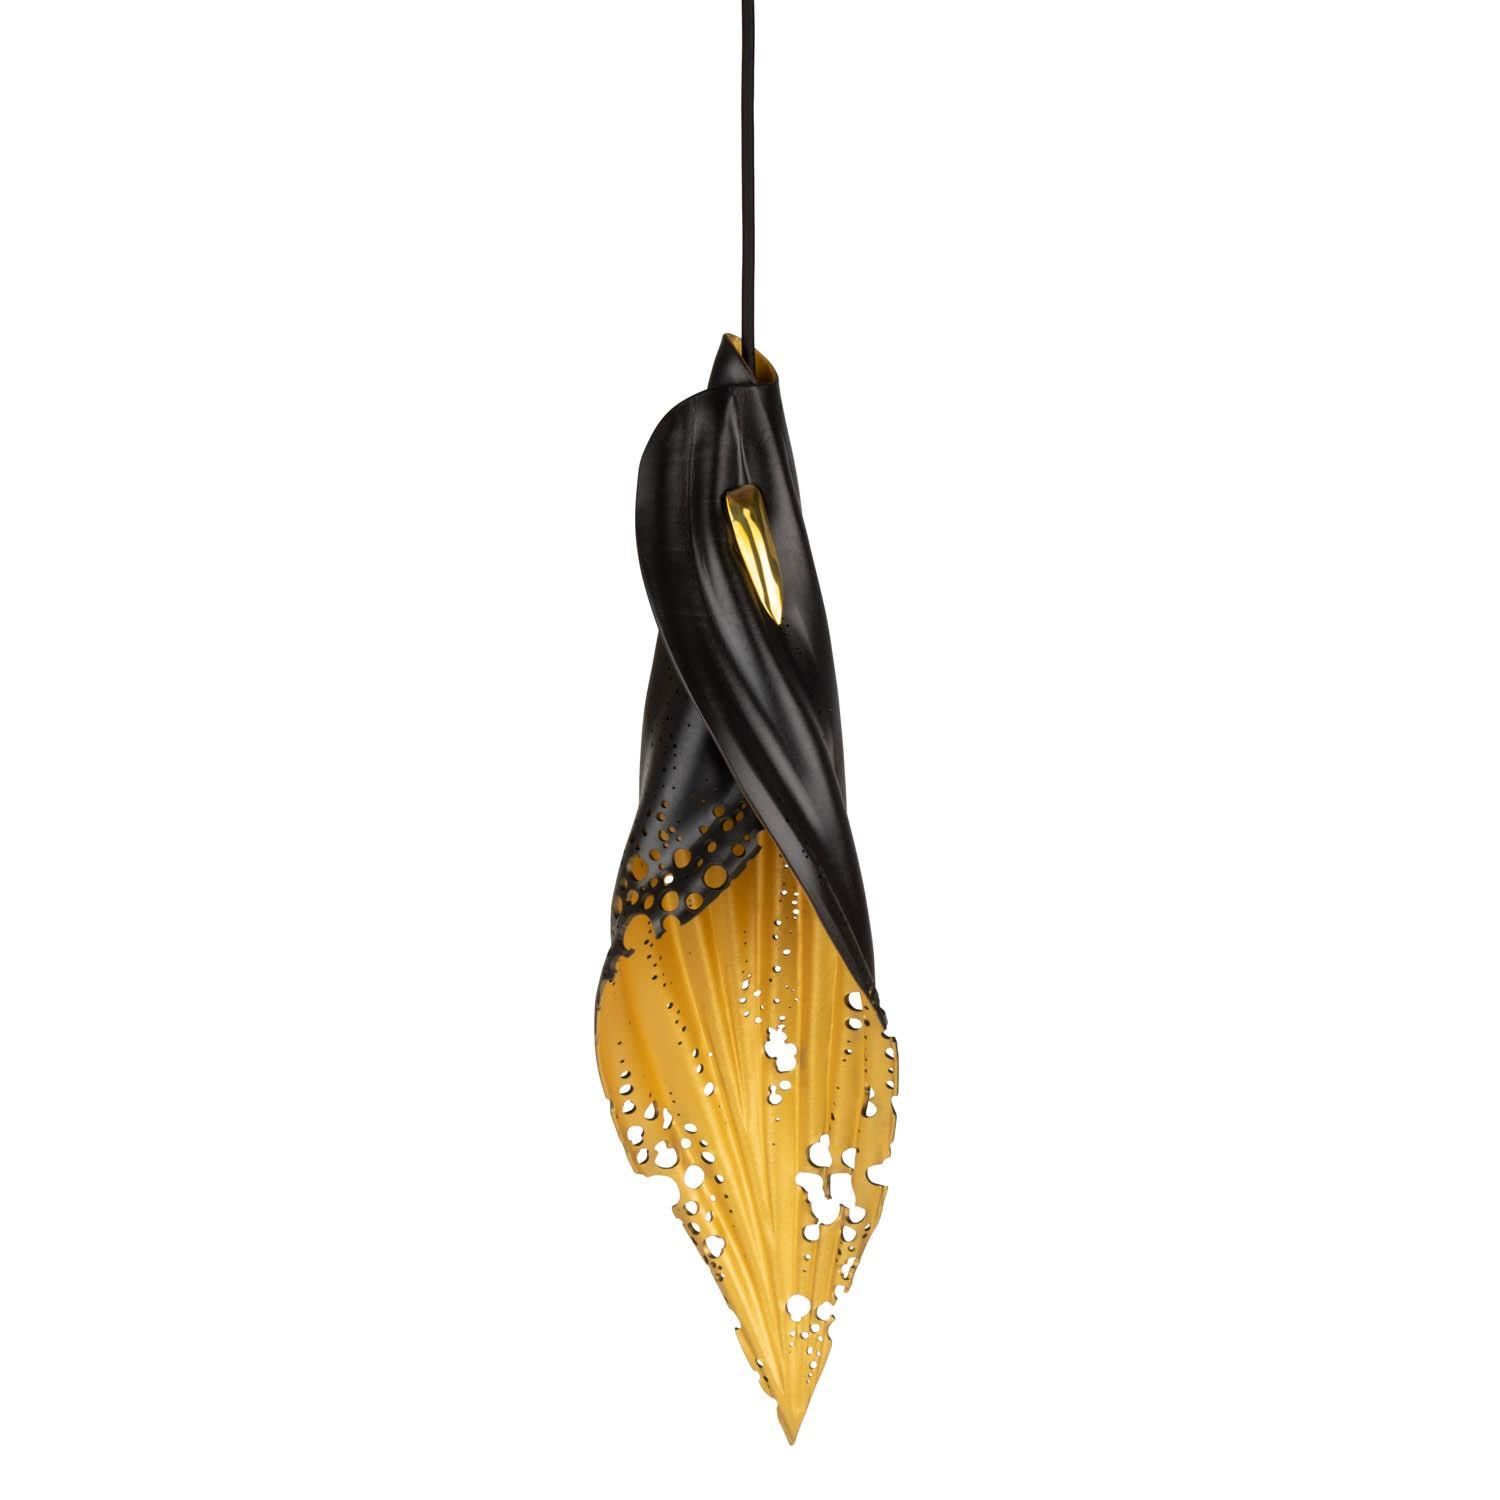 Pierced Blade Light - Medium - Black/Gold